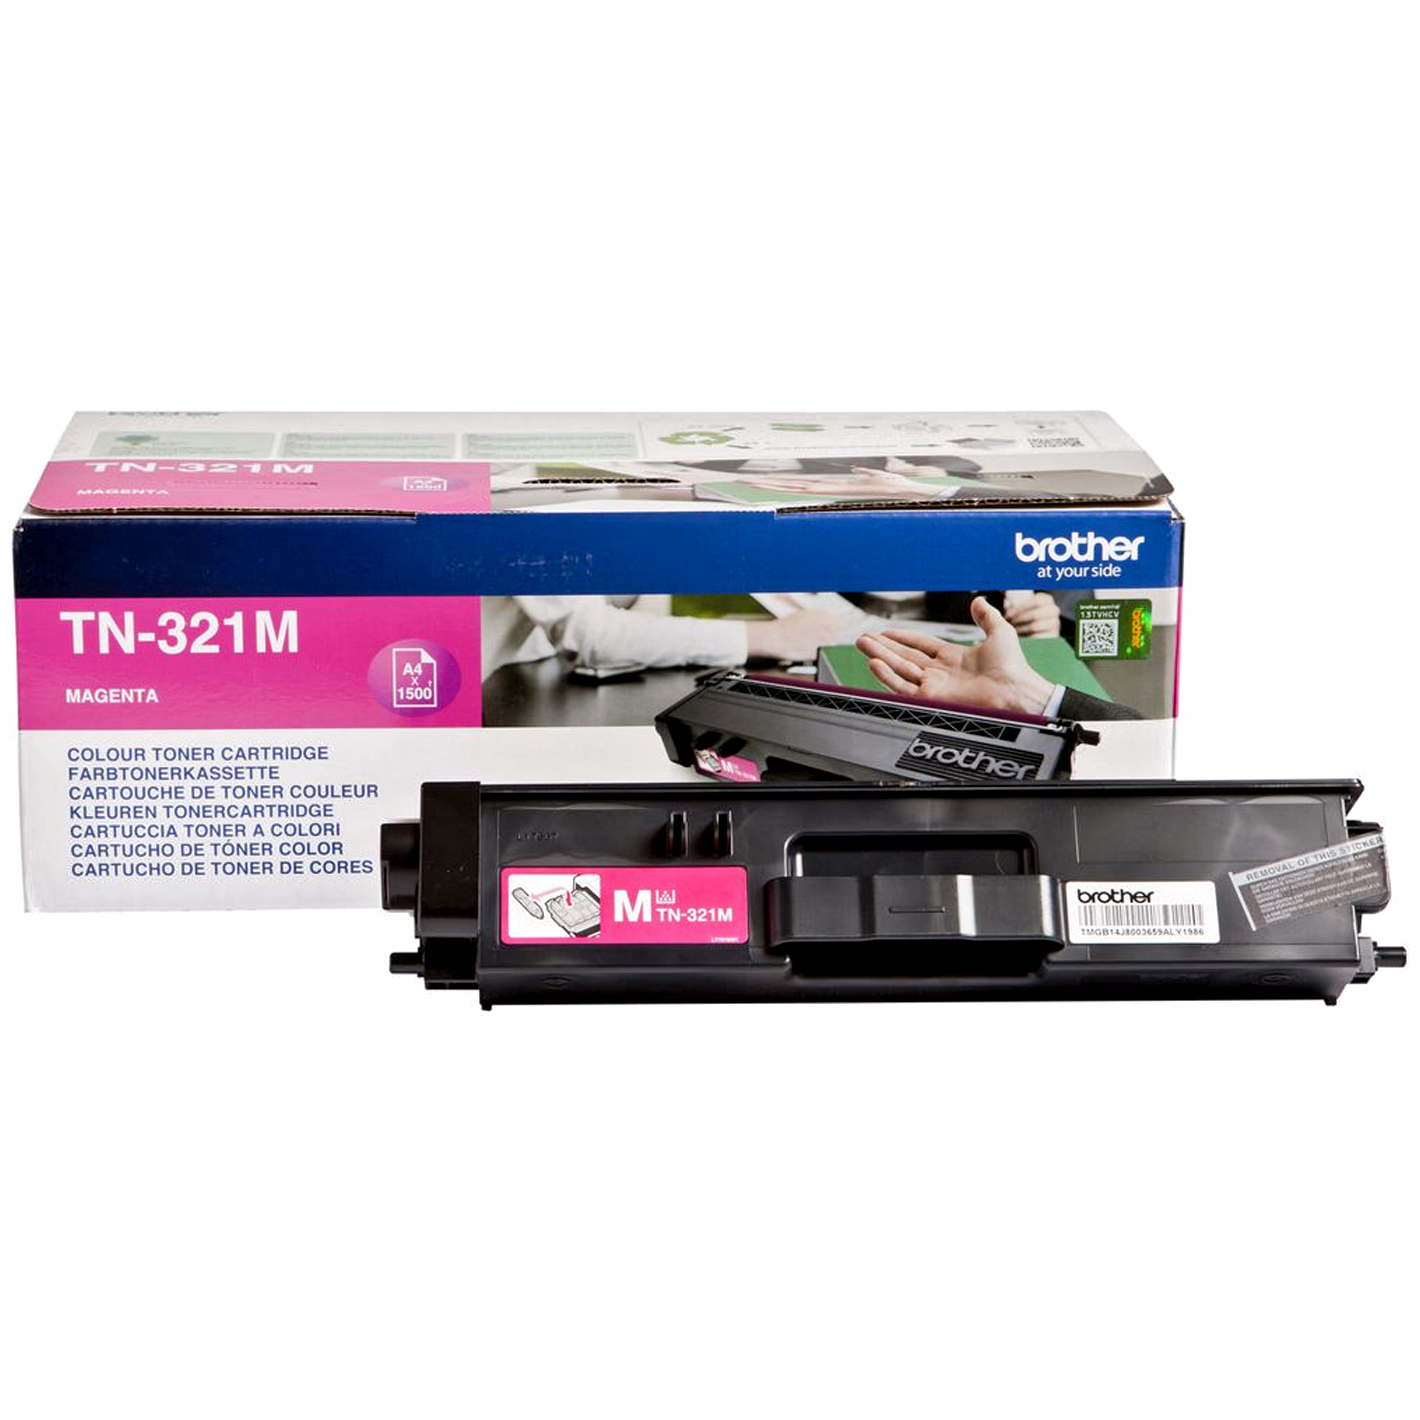 brother Hll8250/dpcl8400/8450 Mage Ton 1.5k Tn321m - AD01